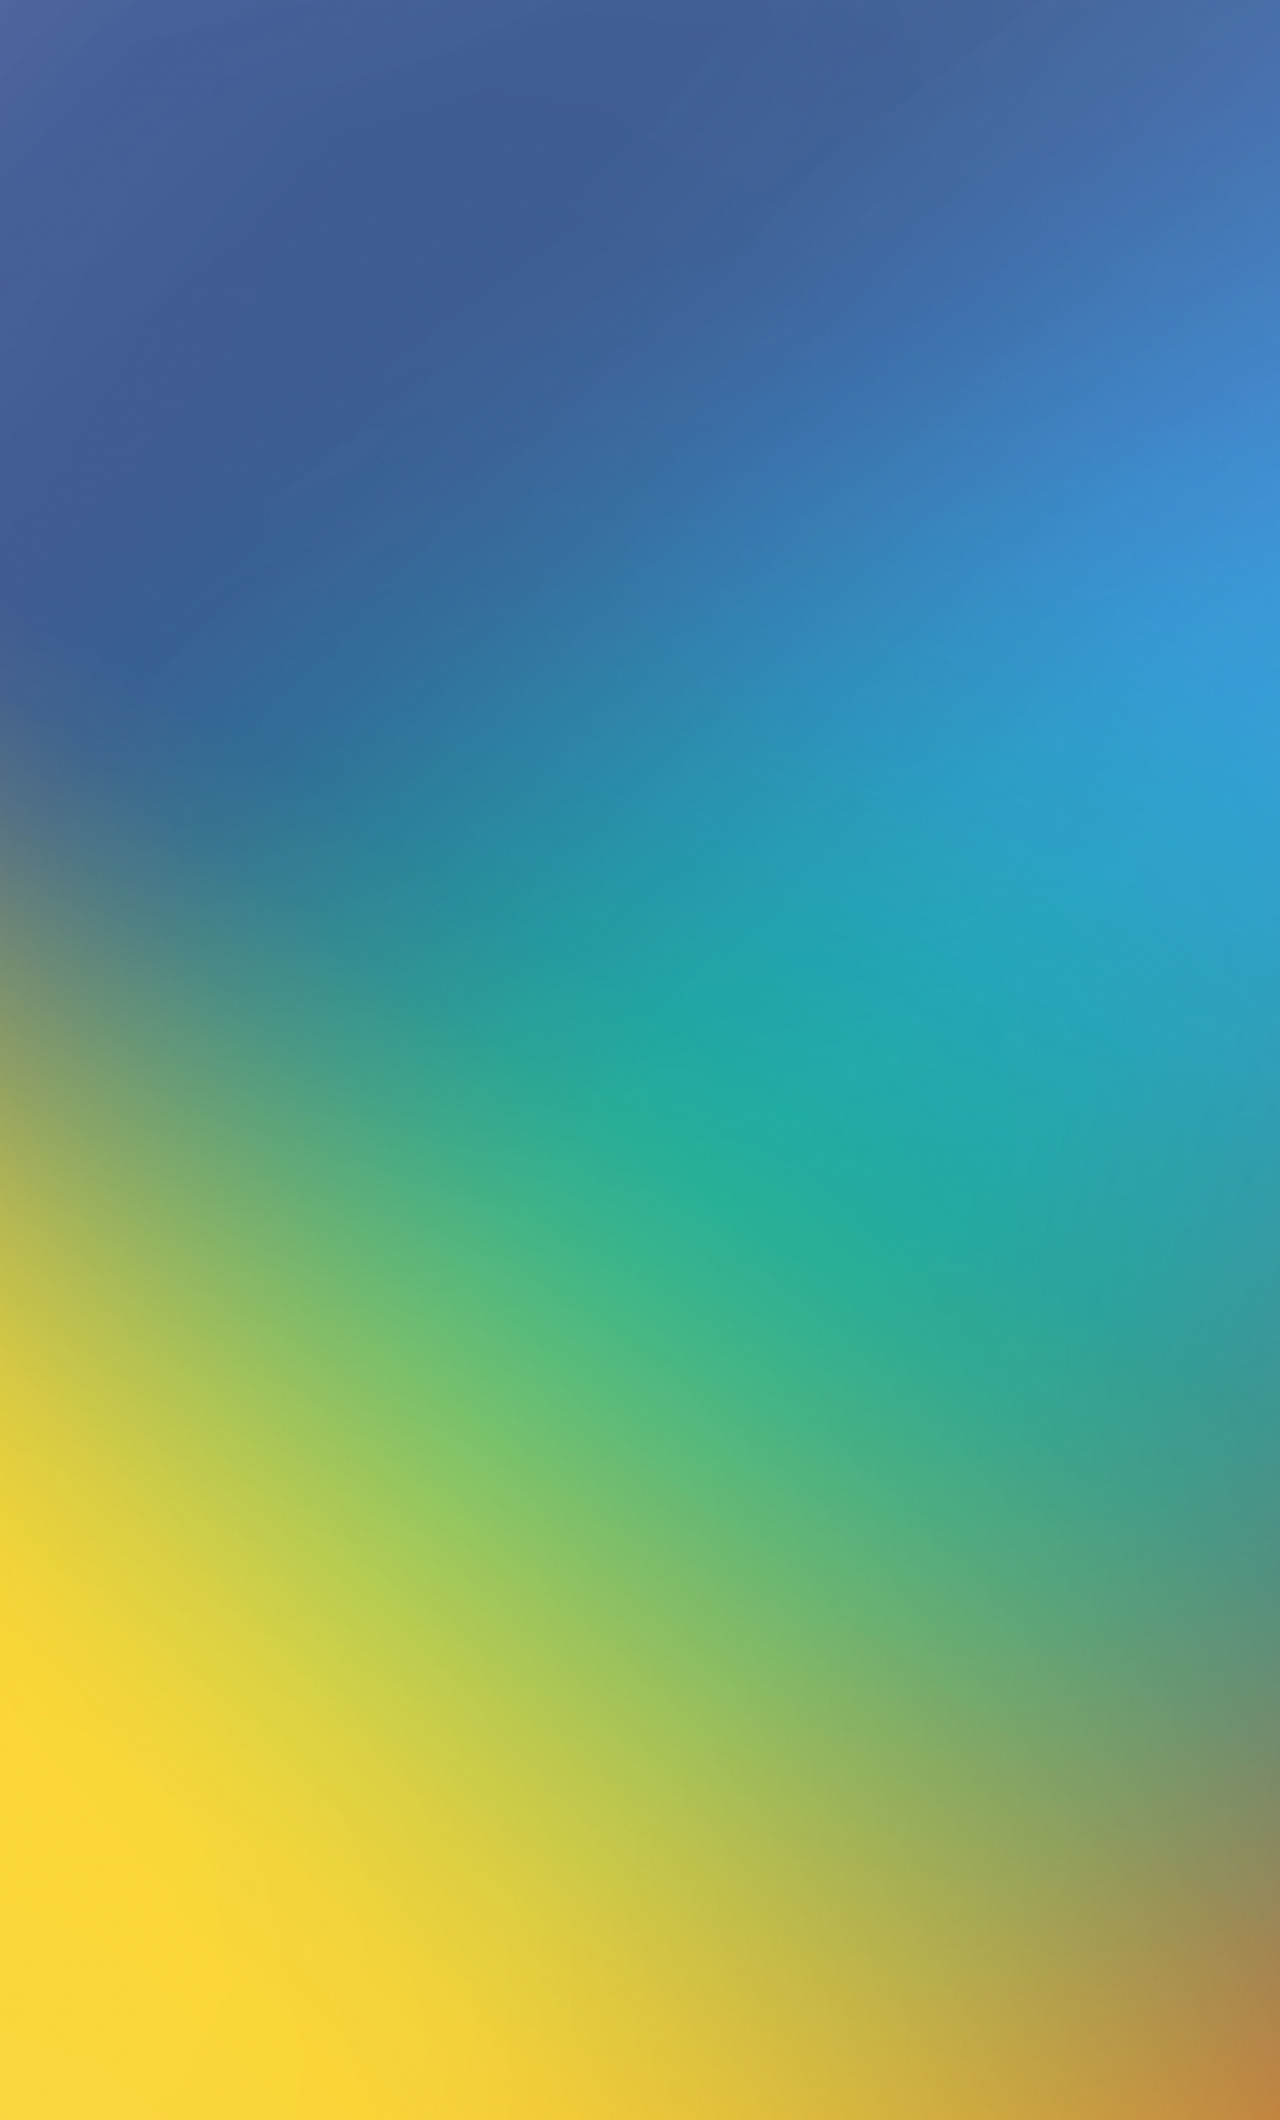 Download 1280x2120 Wallpaper Gradient Blue Yellow Abstract